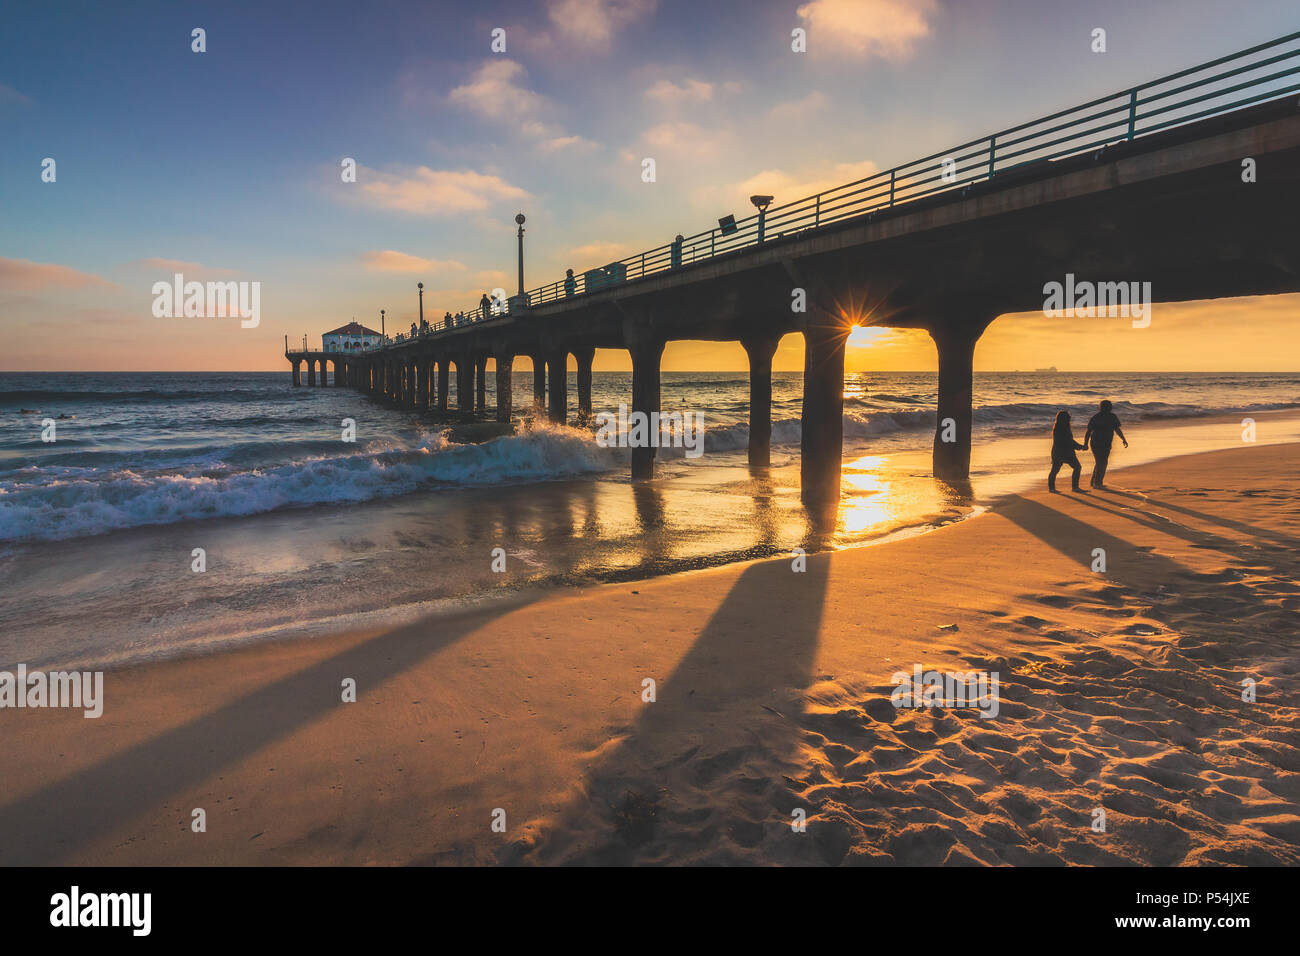 Couple walking under the Manhattan Beach Pier at sunset with long shadows cast on the beach, Manhattan Beach, California - Stock Image